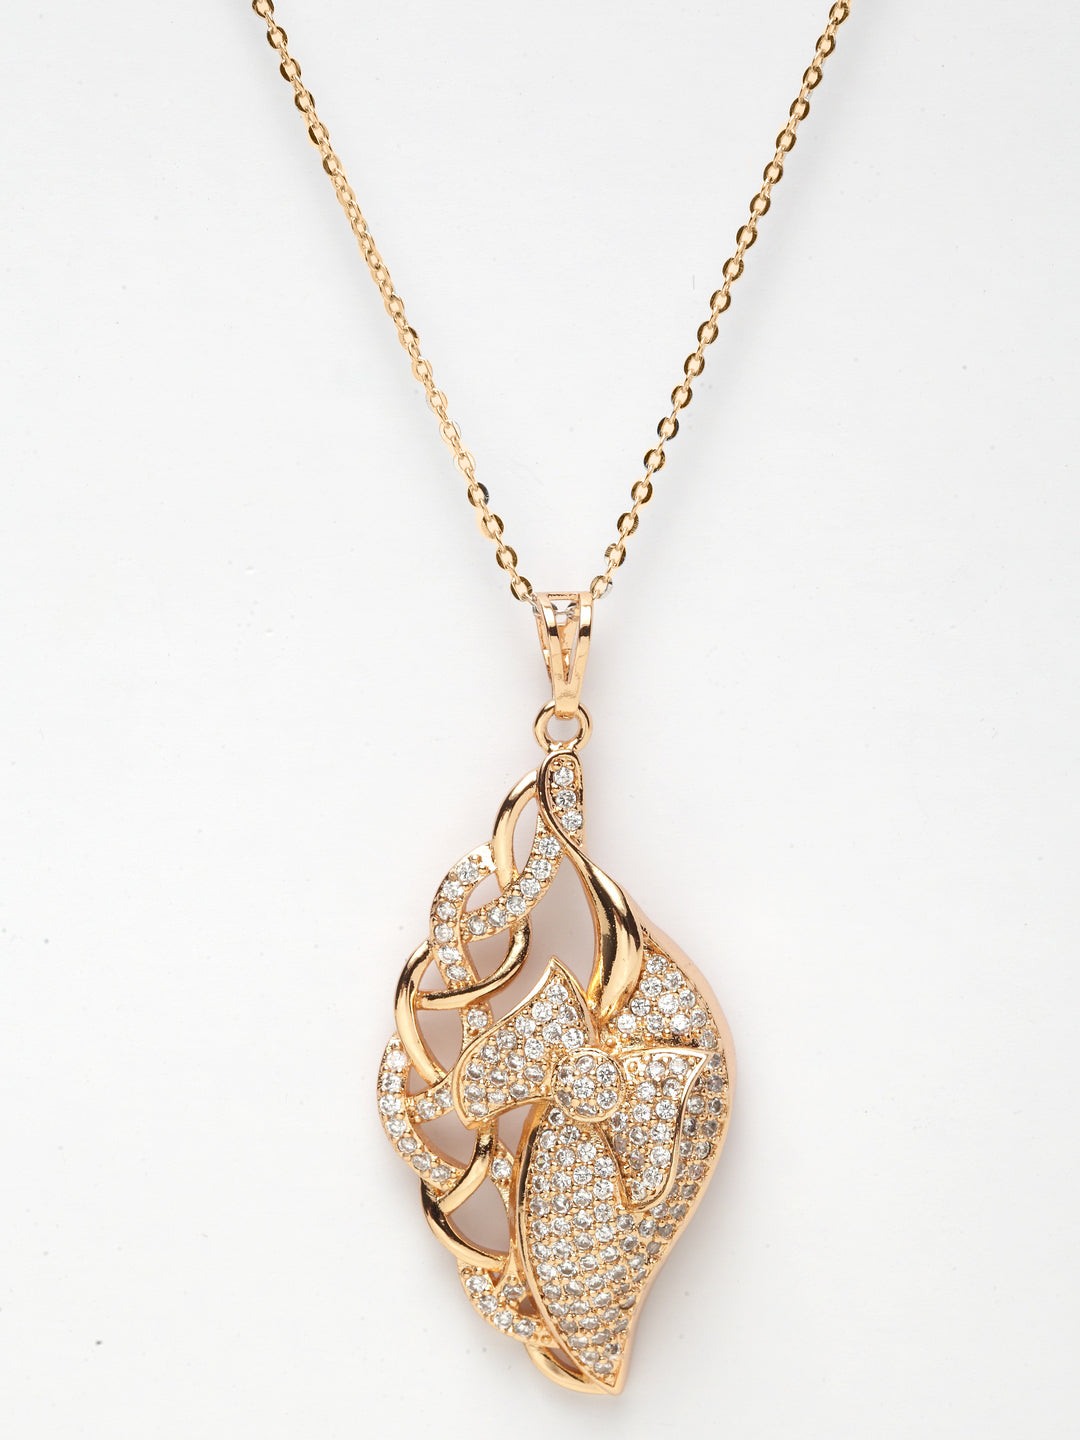 Avant-Garde Paris Luxury Vintage Cubic zirconia Gold Plated Pendant